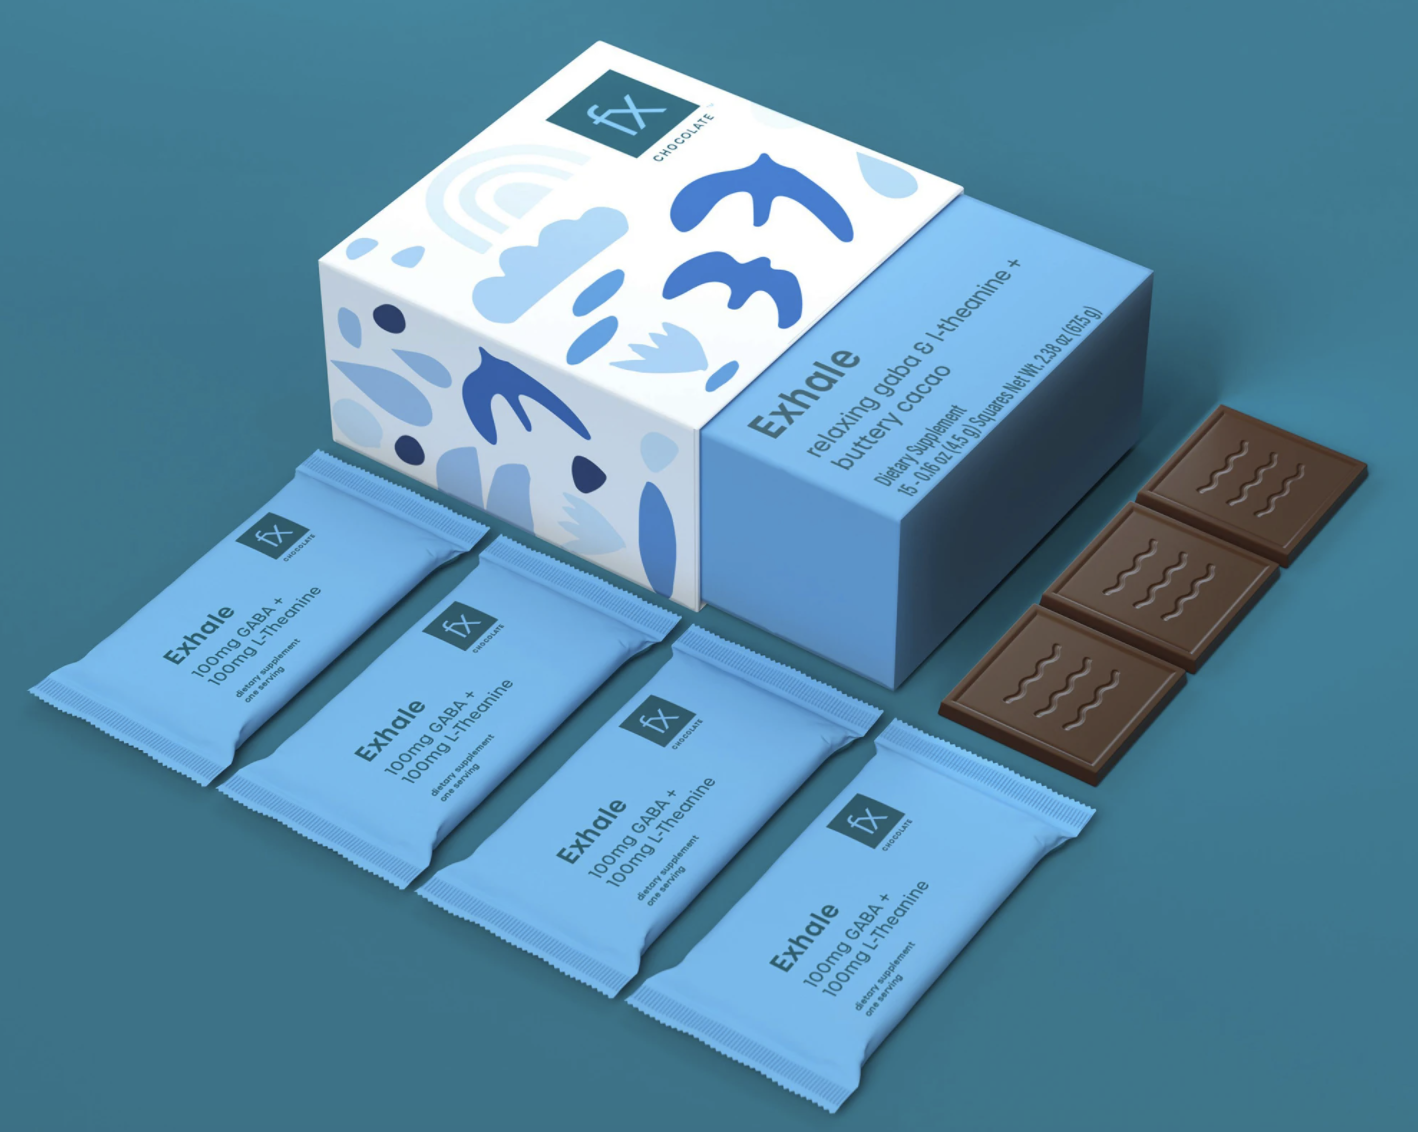 a box of chocolate on a blue background